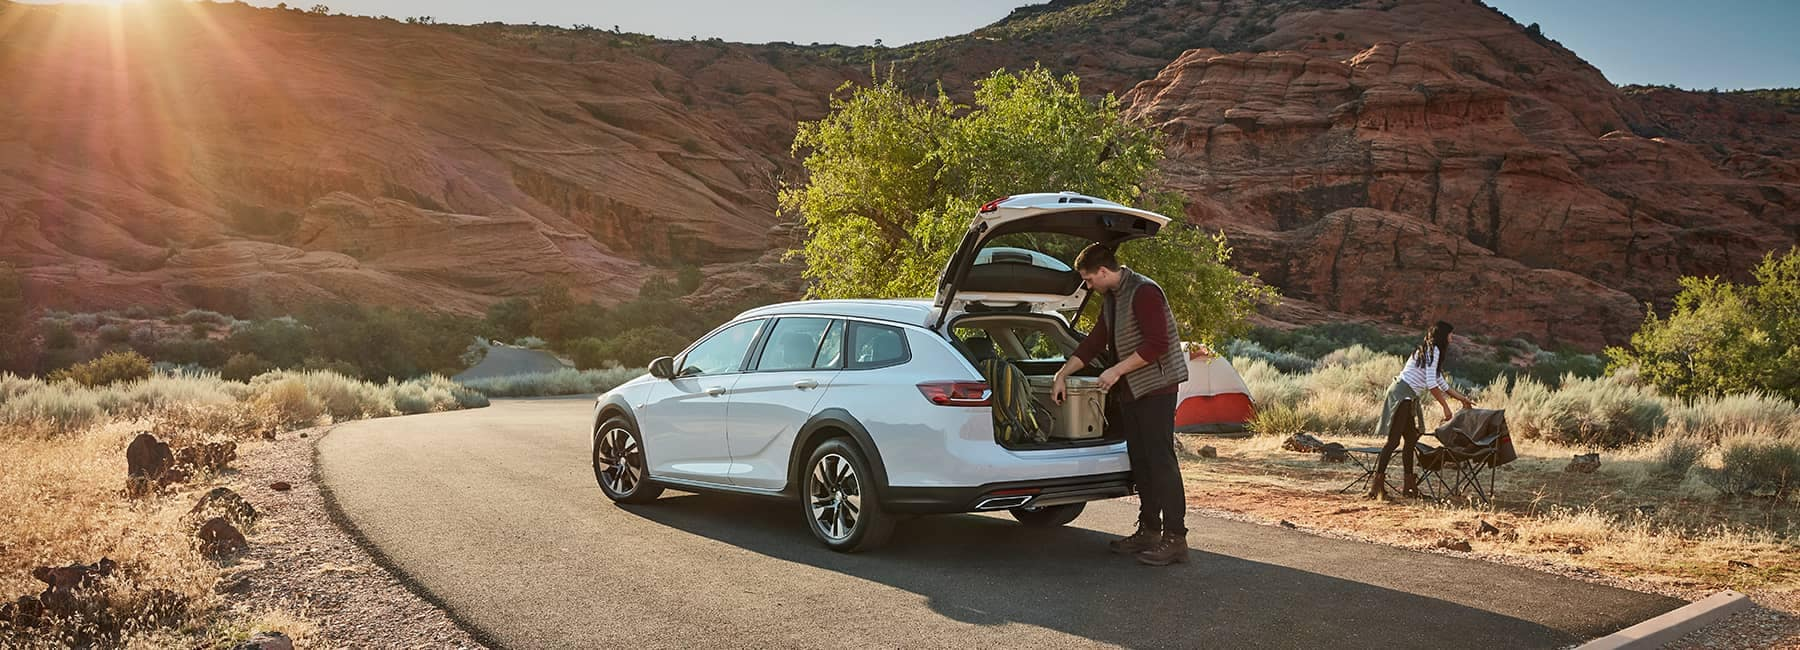 White 2020 Buick Regal TourX on a Desert Rd